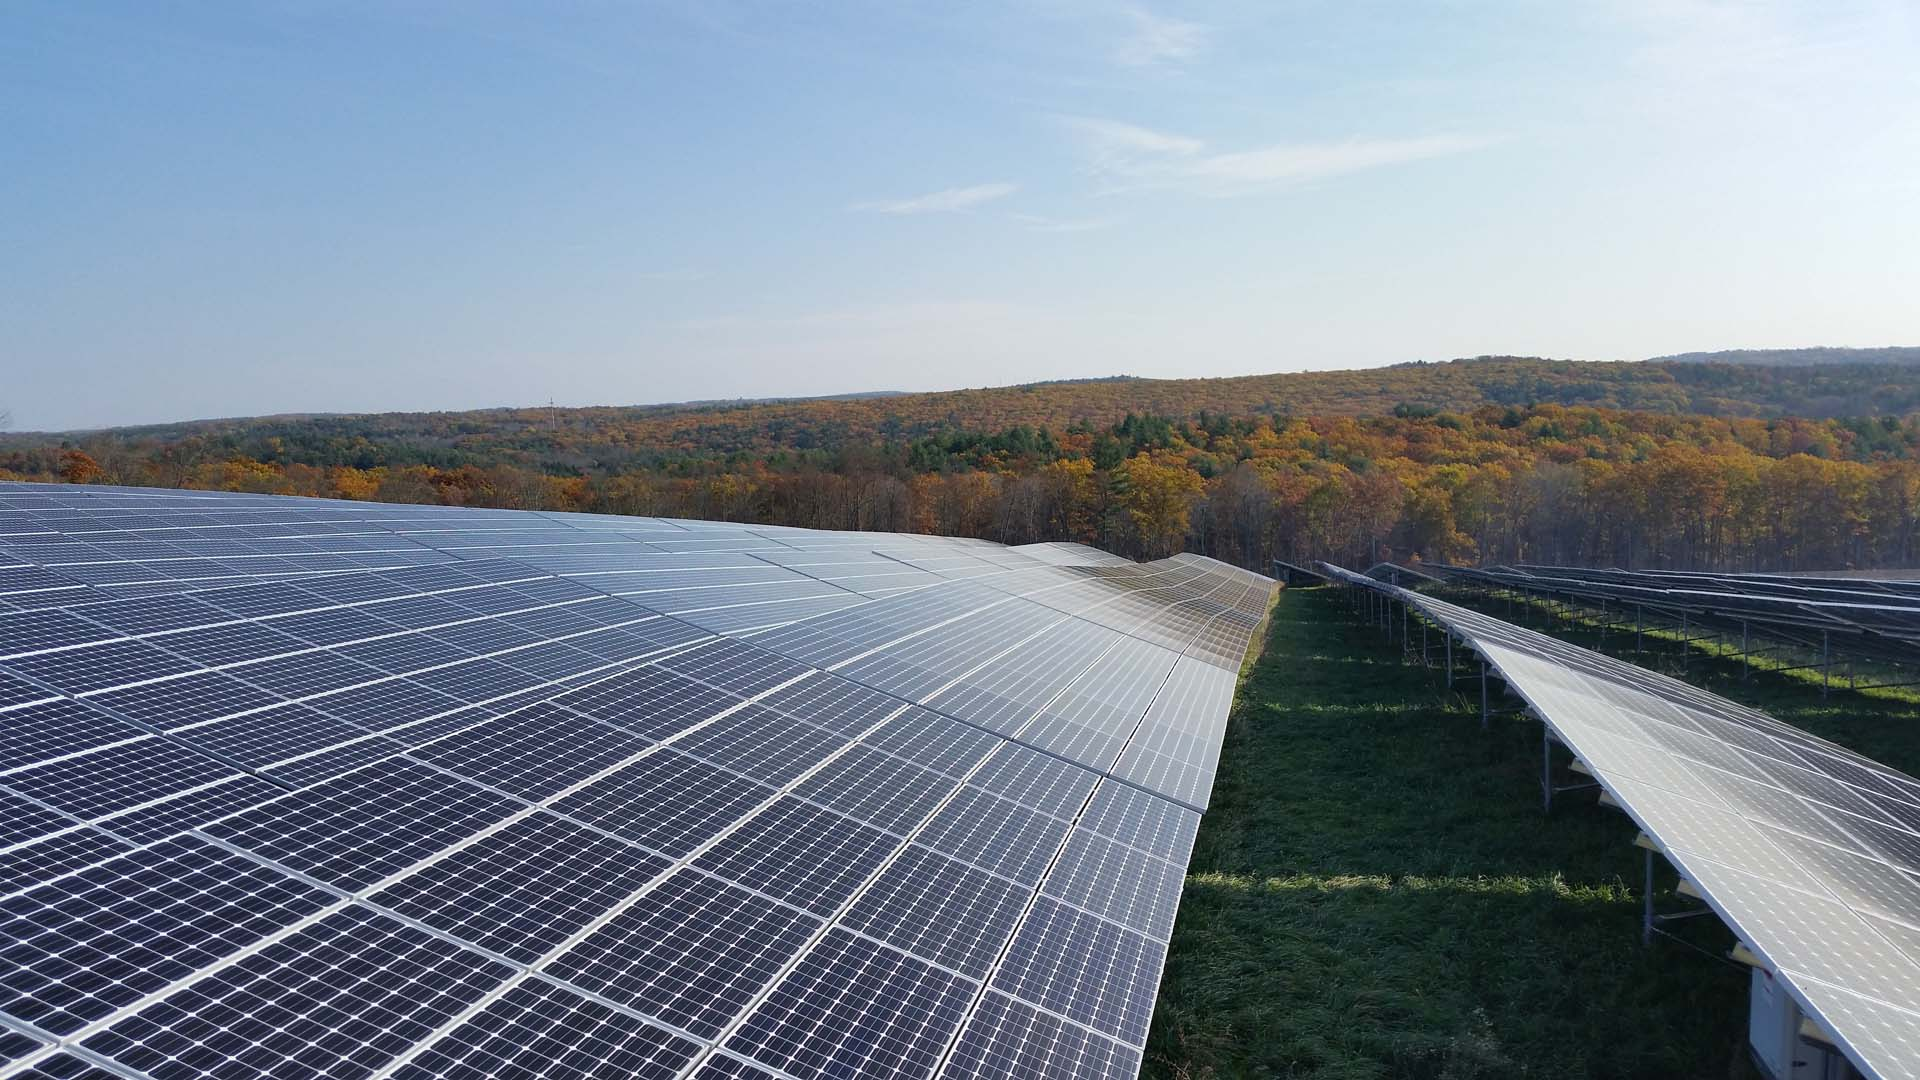 A slew of good news for Massachusetts' solar industry; including a government proposal that could double deployment and a new community solar facility from NRG Energy. Source: Business Wire